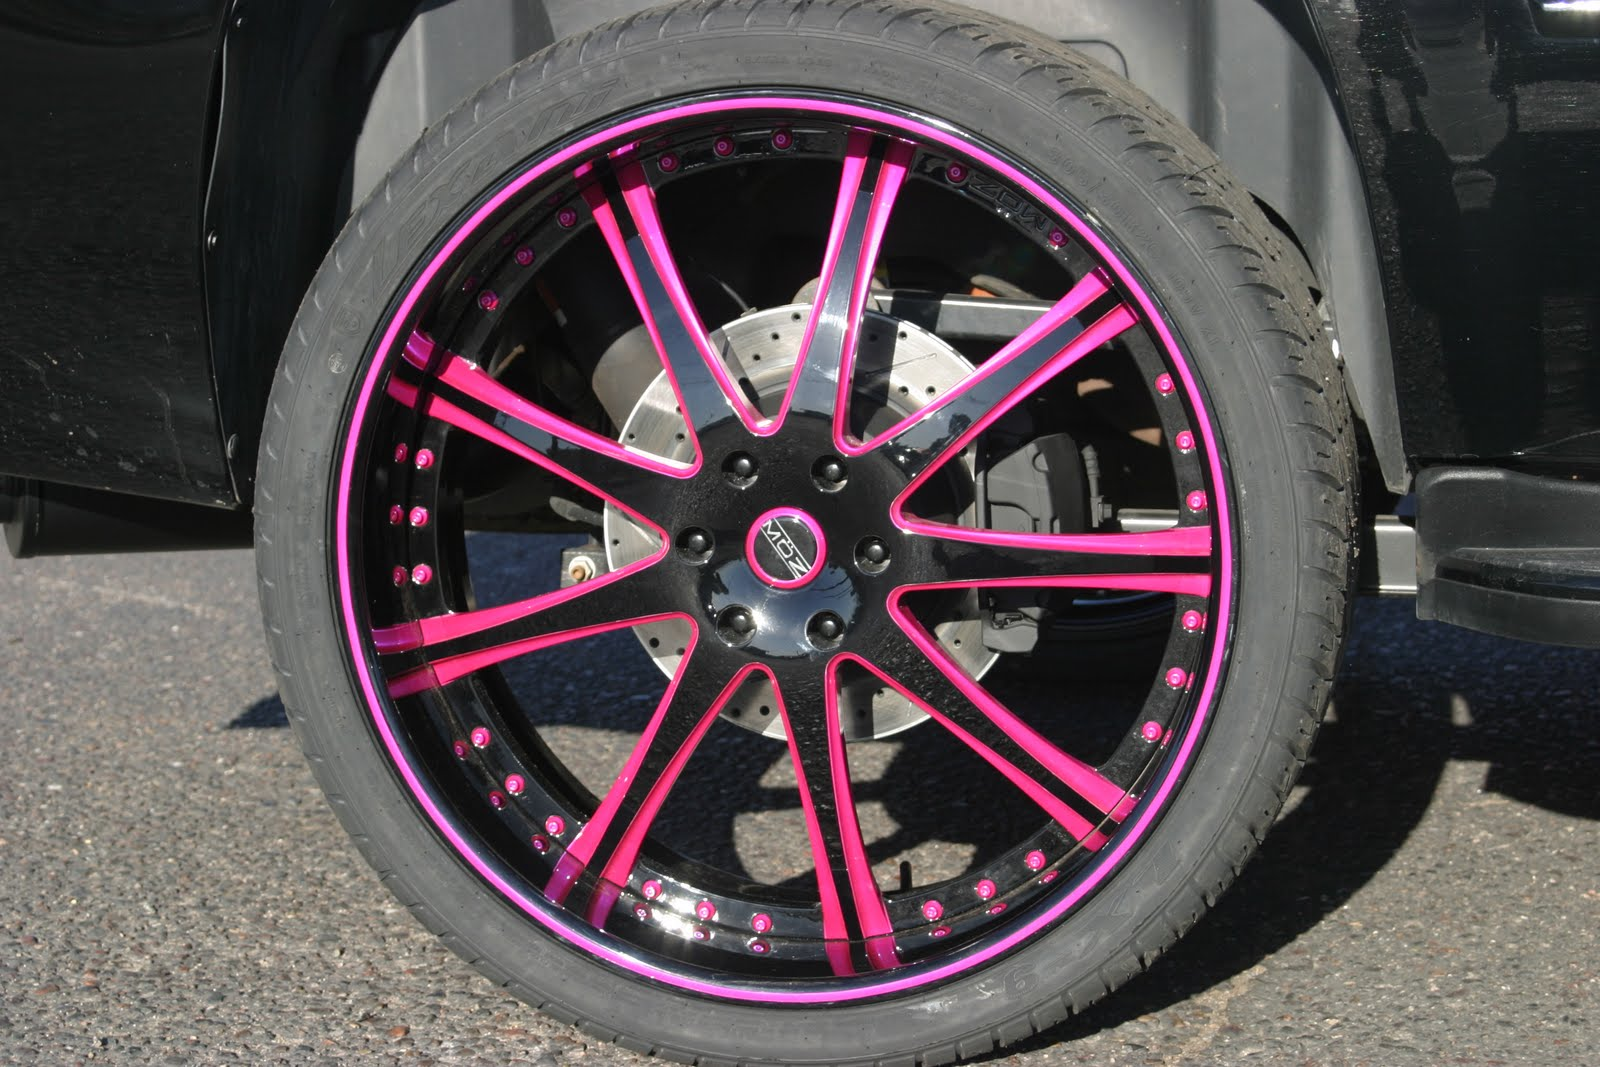 http://2.bp.blogspot.com/-0PvlEMEphg8/TcGCX1aLFtI/AAAAAAAAATw/PlhFcpTJhw4/s1600/escalade_caddy_caddilac_black_pink_purple_los_angeles_wheels_rims_luxury_cute_moz_.JPG